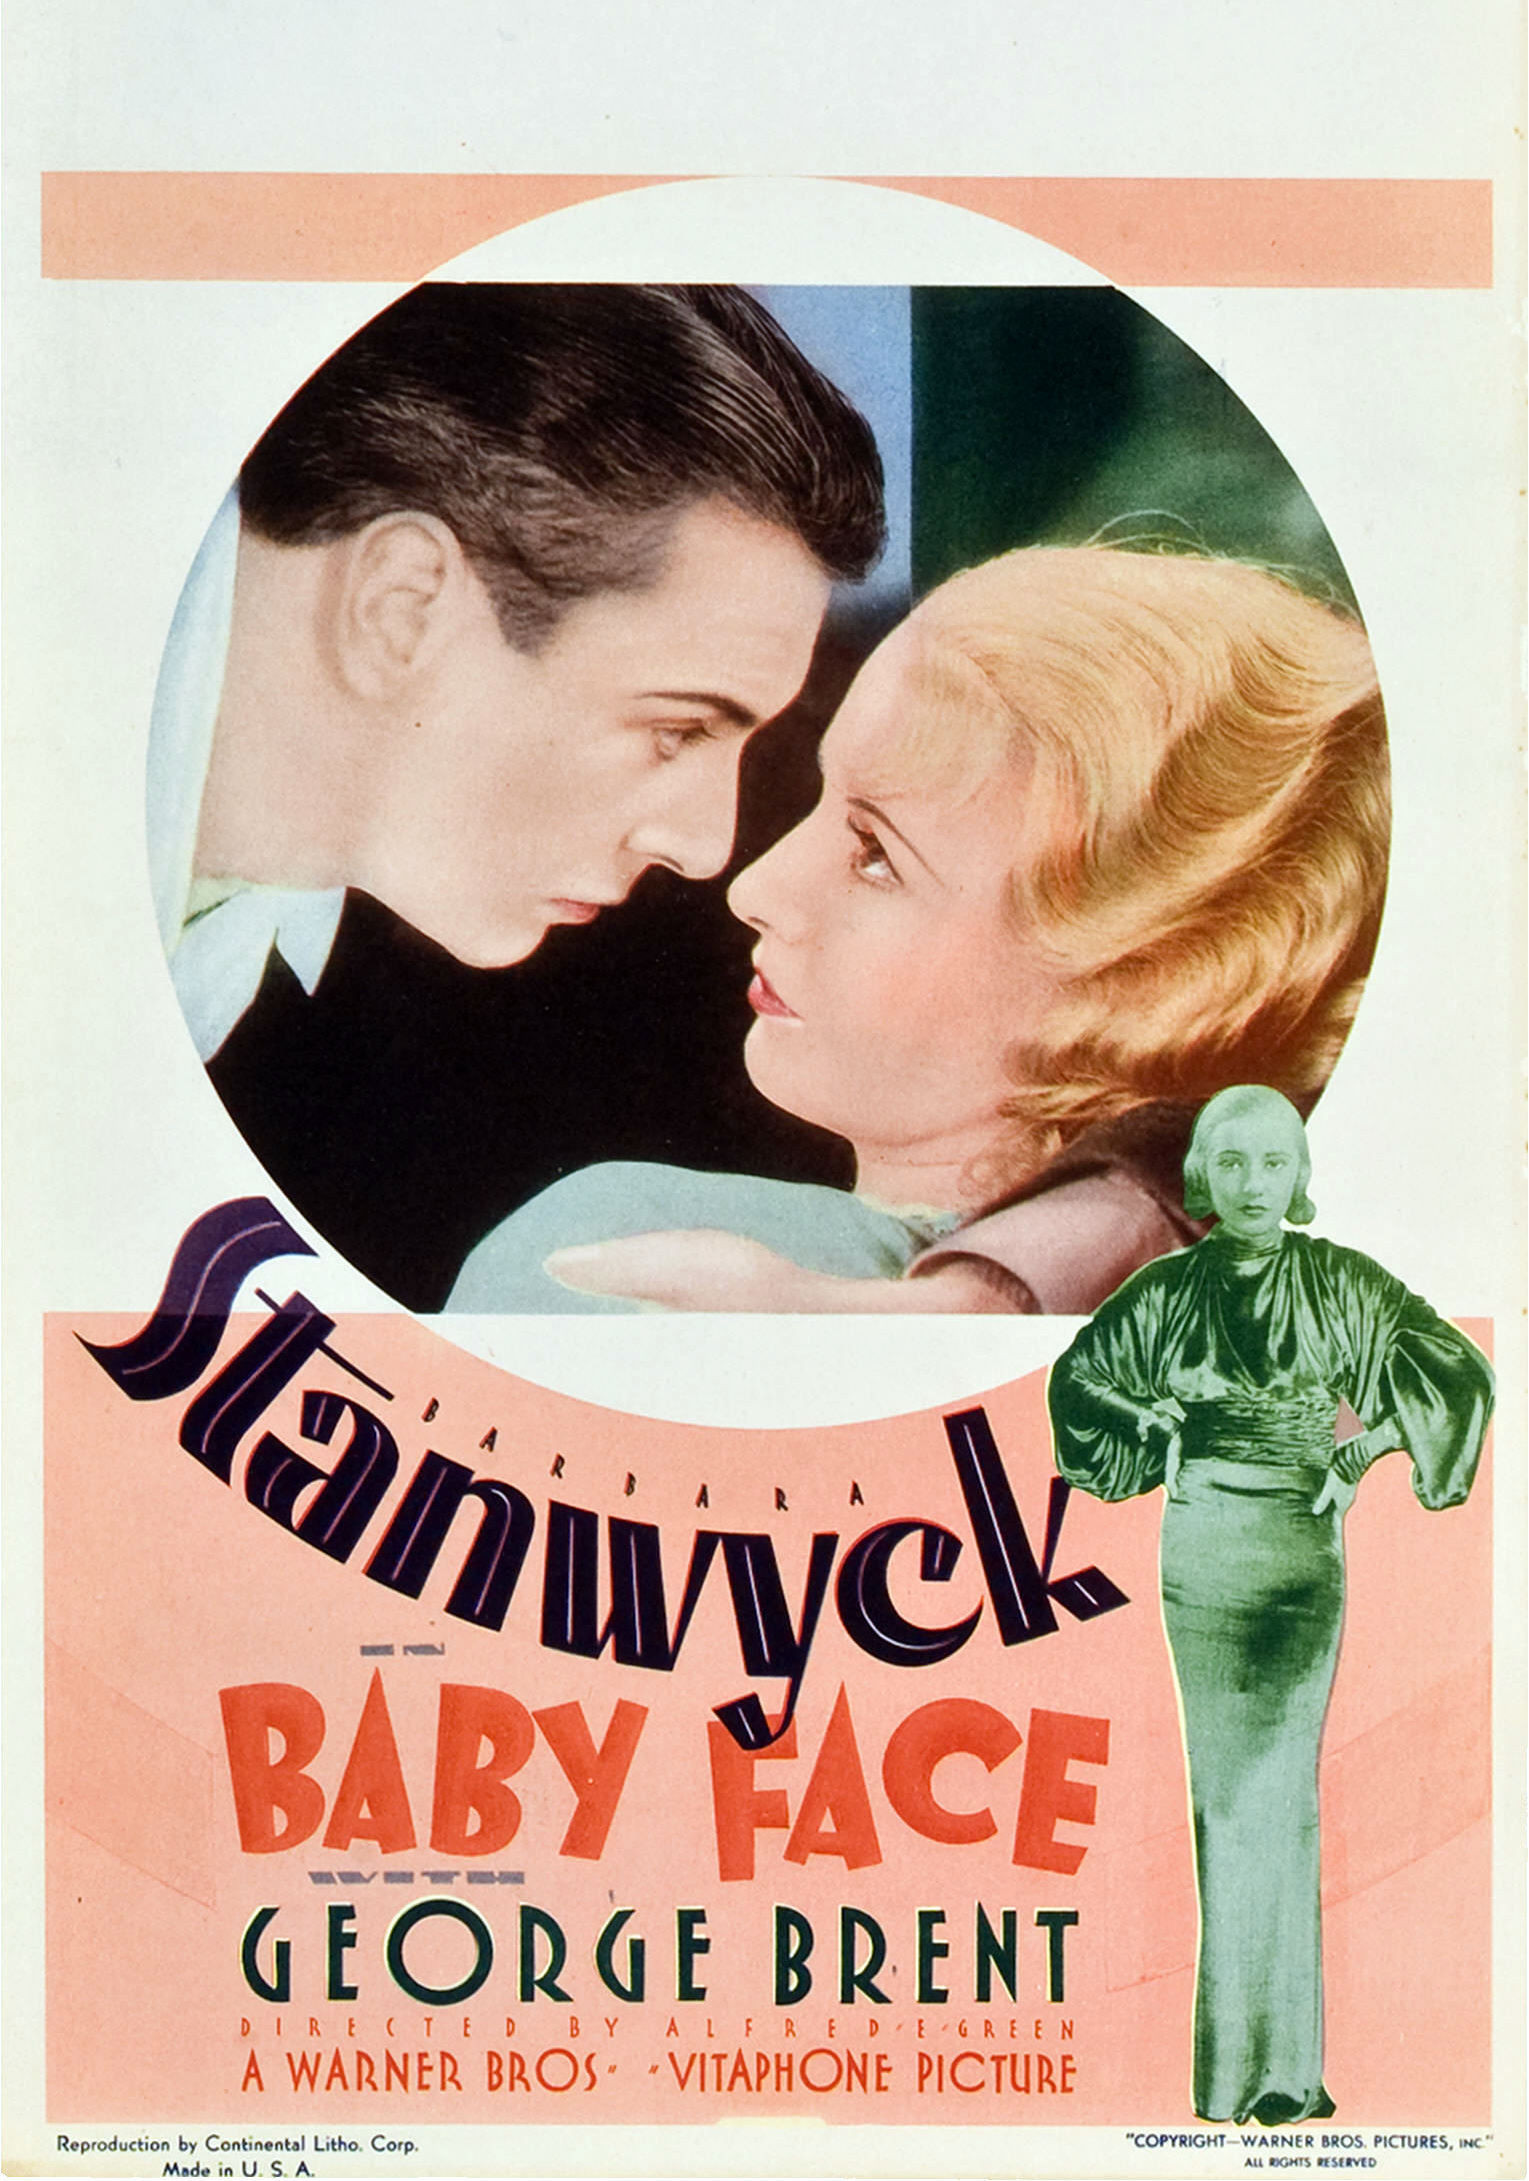 Baby Face (film)